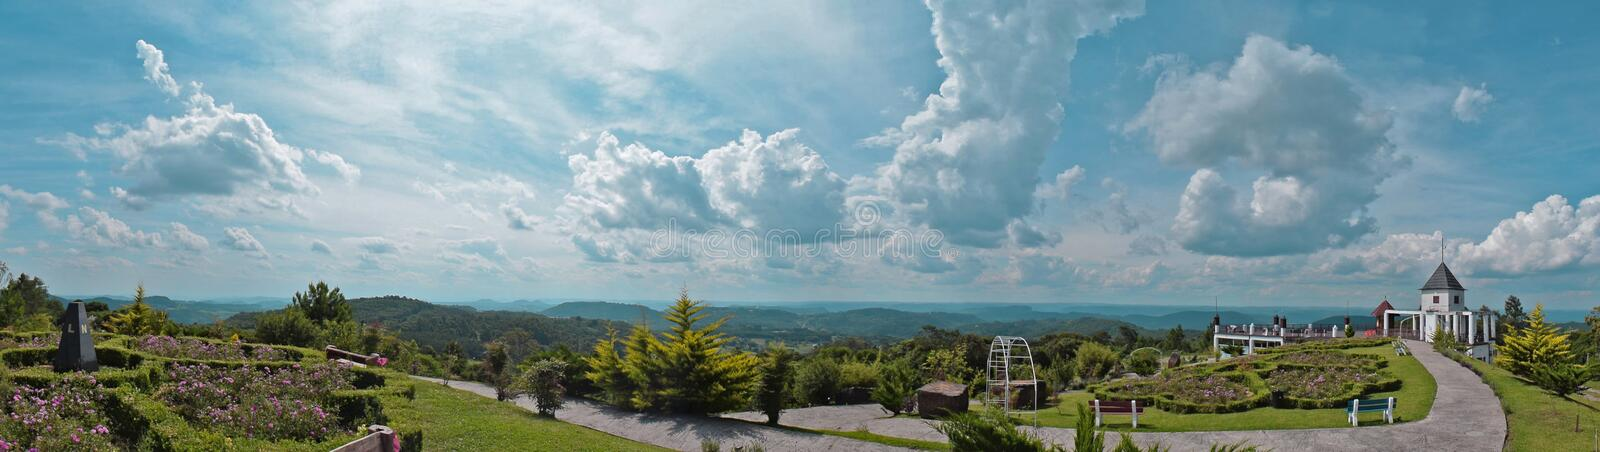 White Concrete Building Under Clear Sky Photo royalty free stock photo